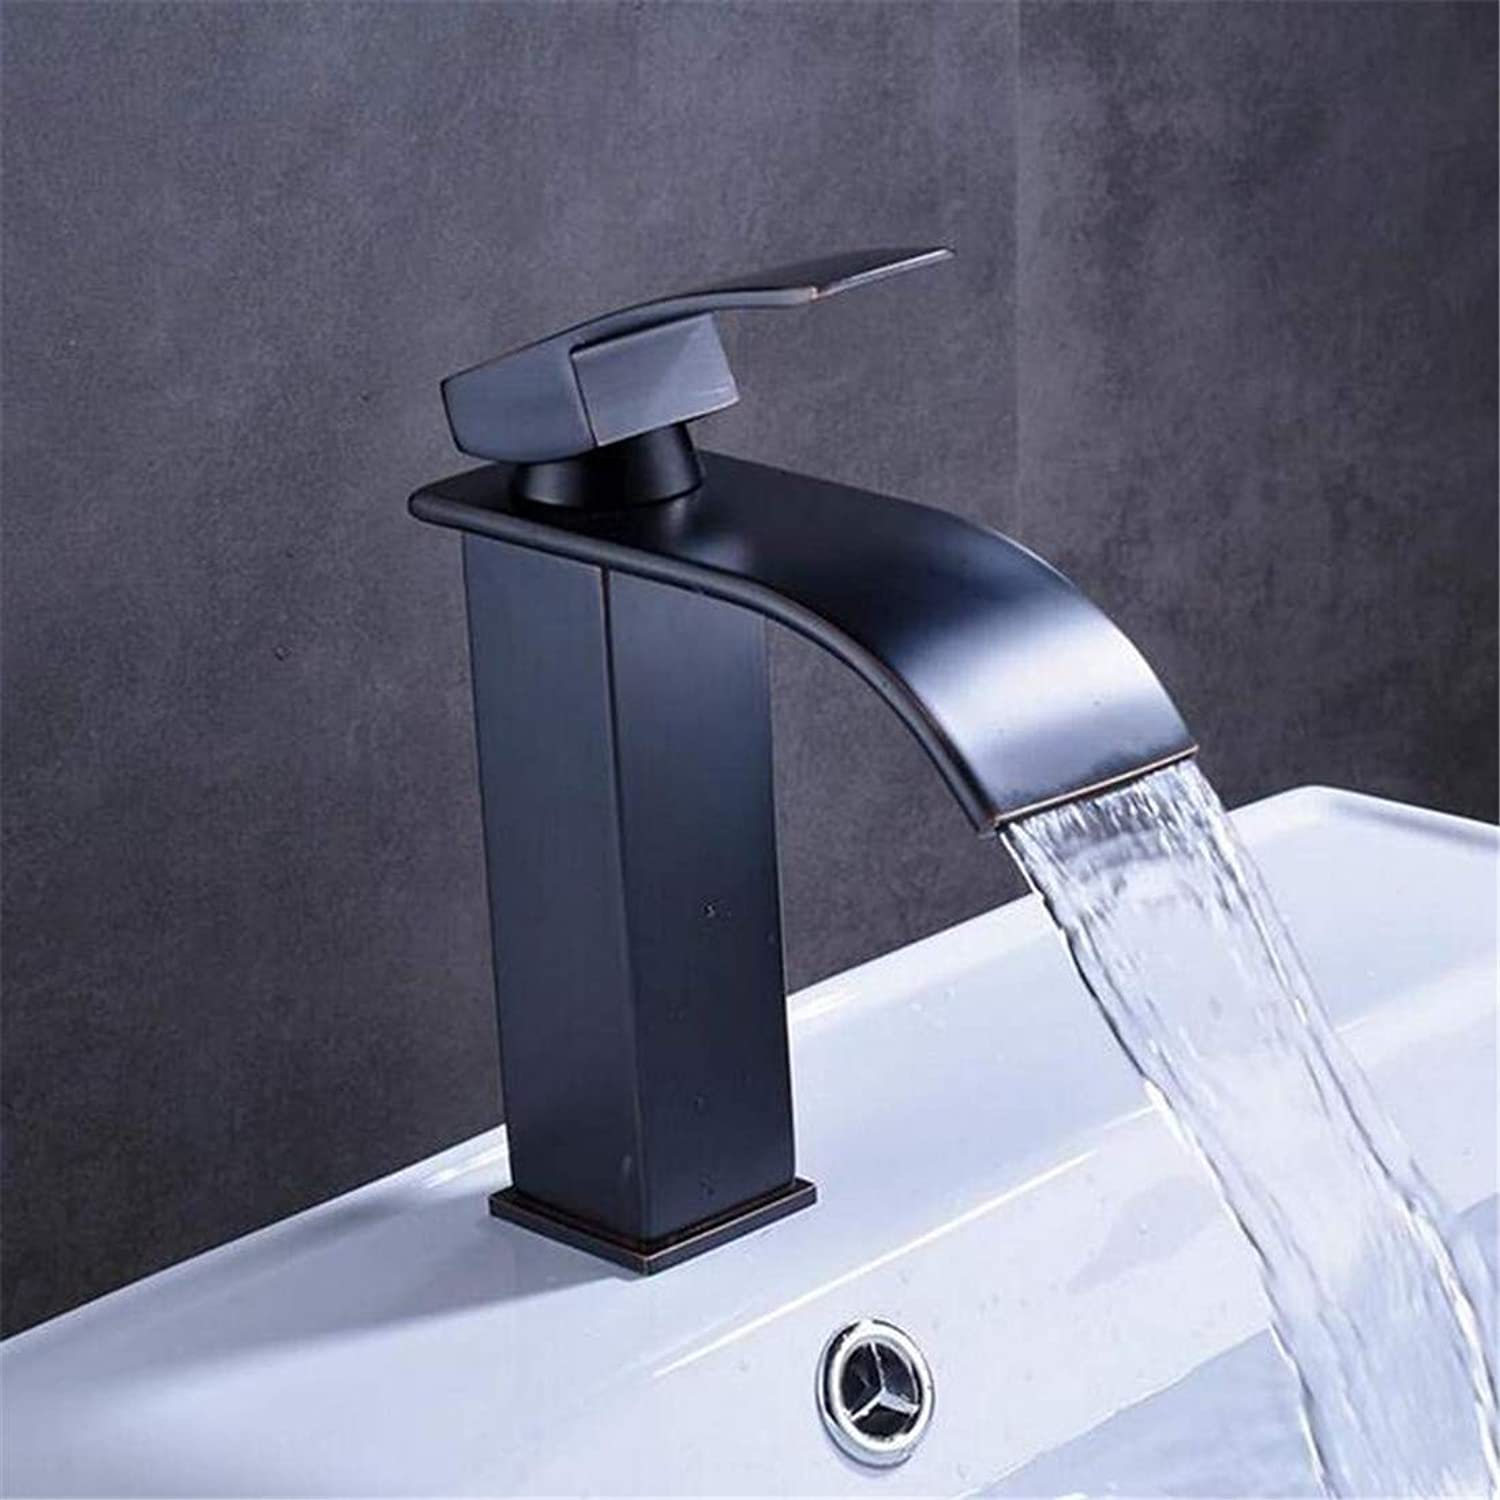 Faucet Modern Plated Kitchen Bathroom Faucet Basin Faucet Faucet Deck Mounted Mixer Water Tap with Hot and Cold Water Crane